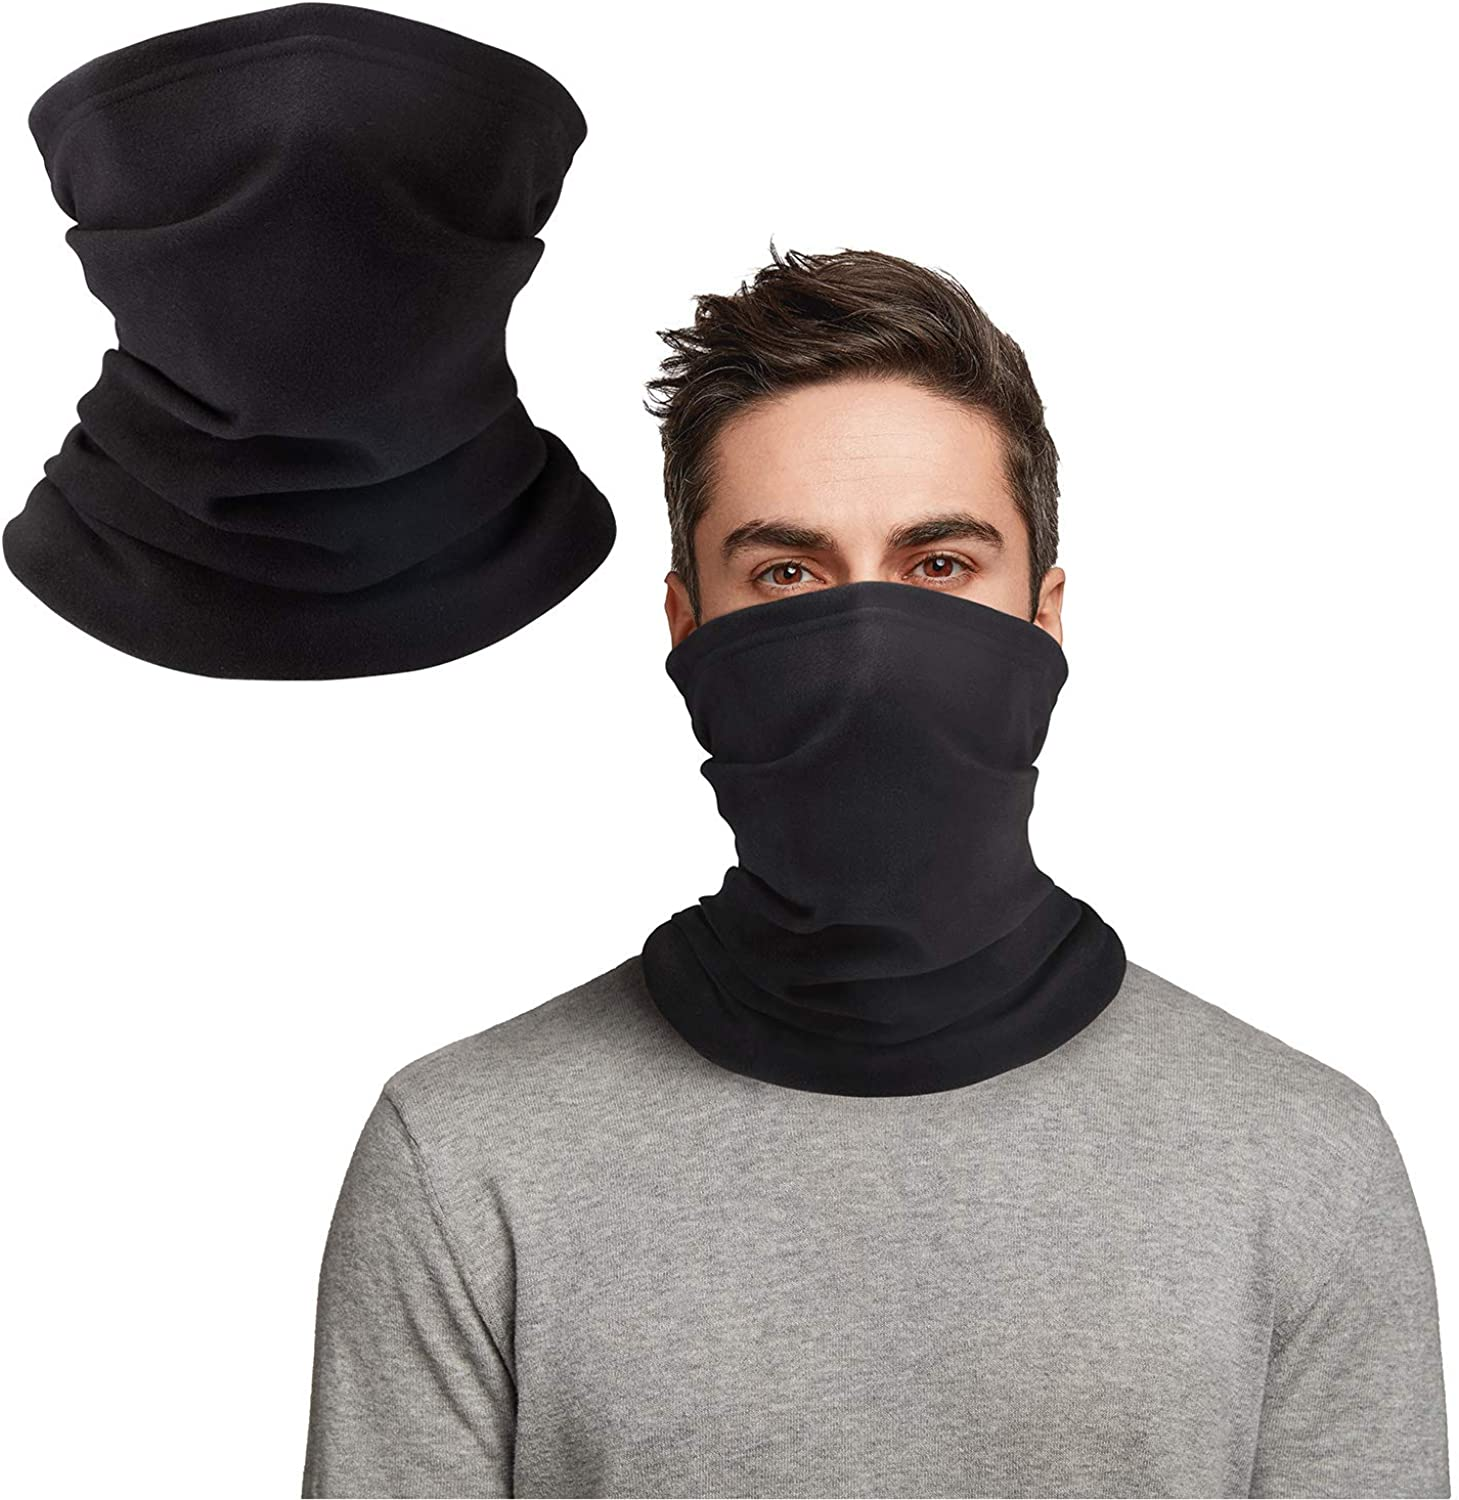 Doerix Neck Warmer, Neck Gaiter Face Mask Face Coverings for Men Women, Gators Face Mask Scarf Balaclava for Cold Weather